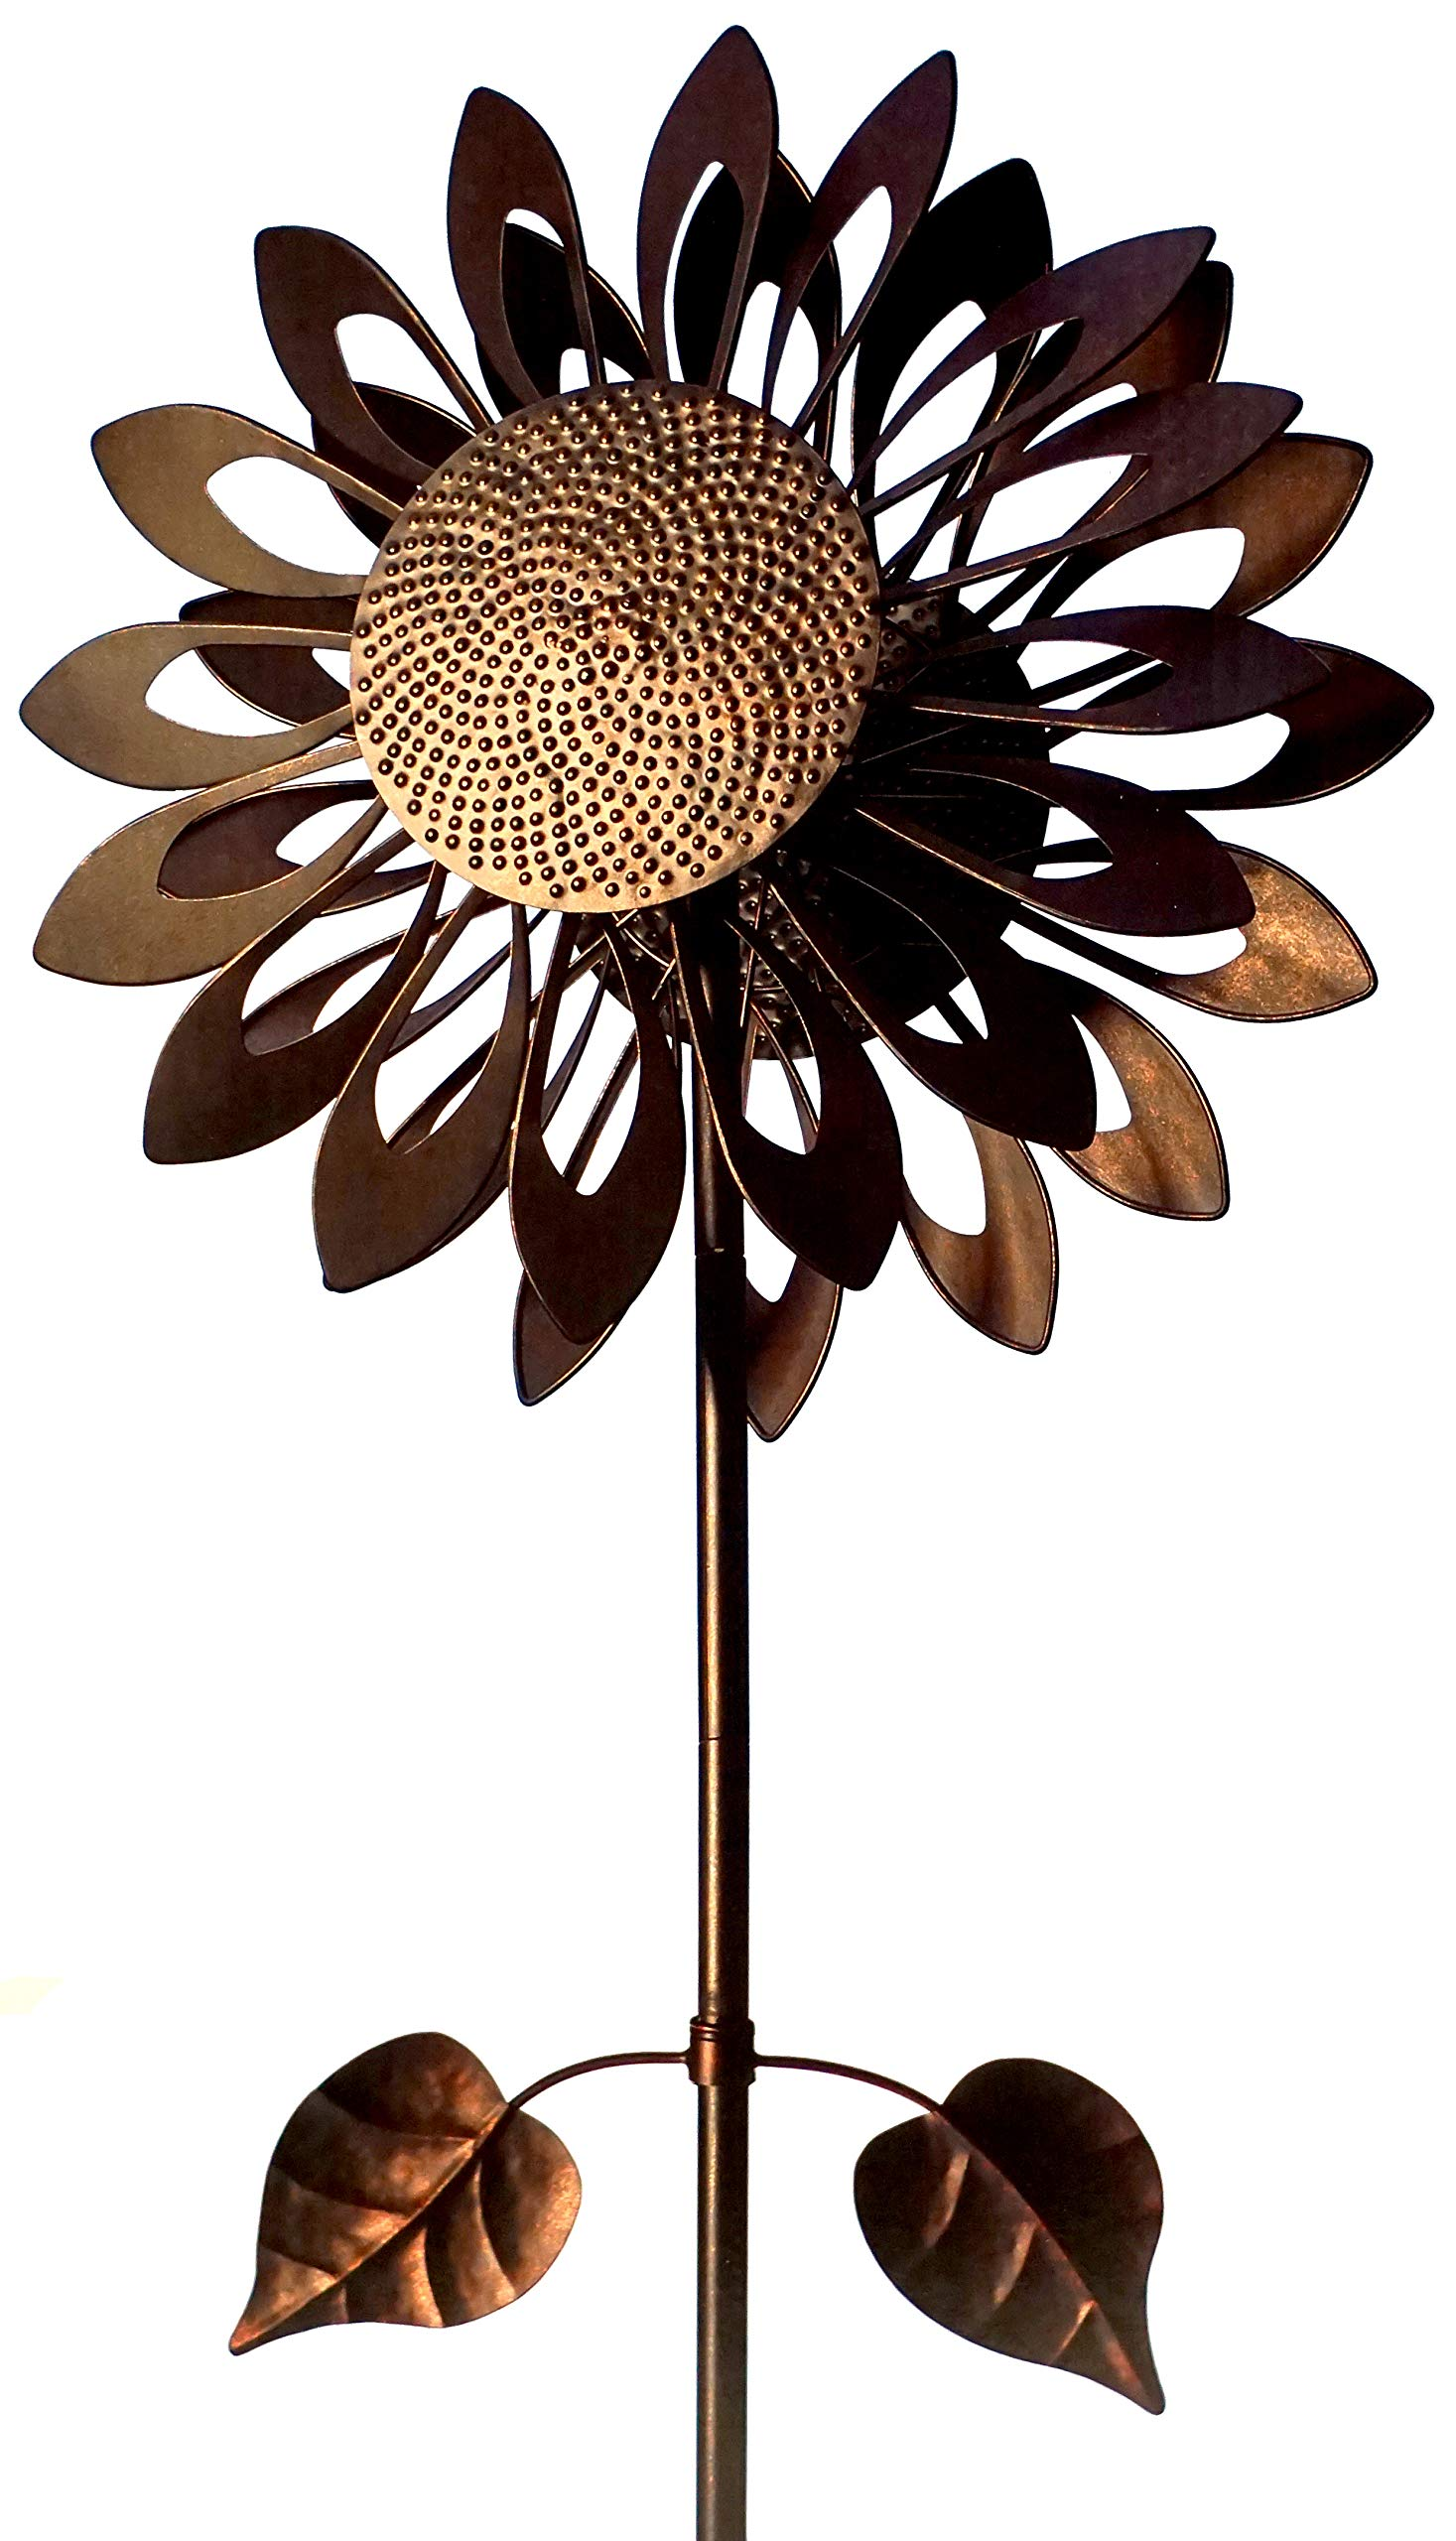 Southern Patio COS1900789 Sunflower Wind Spinner-73 Tall by Southern Patio